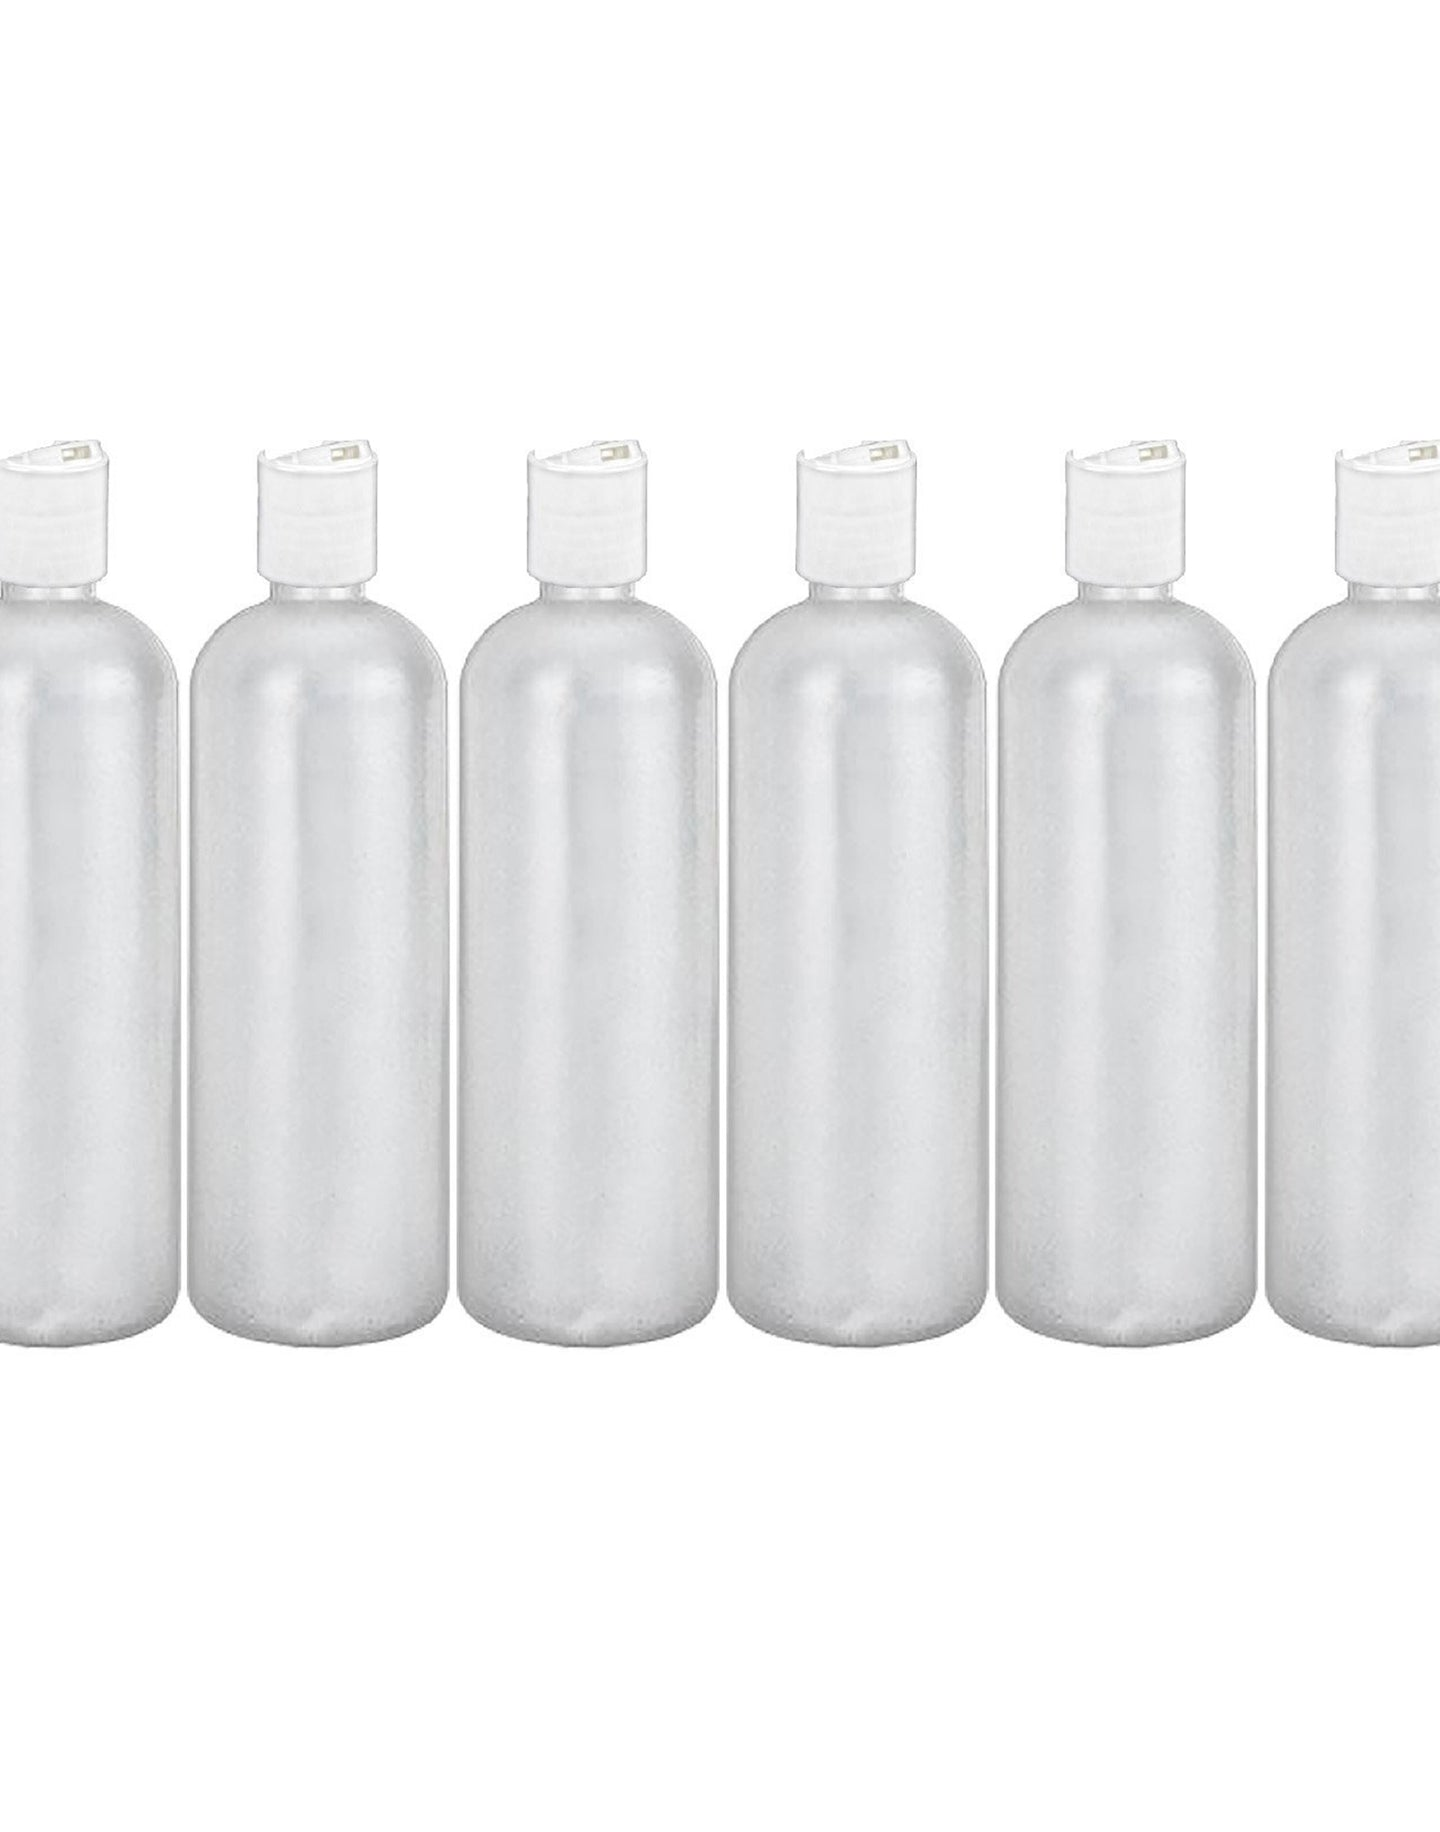 MoYo Natural Labs 32 oz Refillable Bottles, Empty Shampoo Containers with Disc Caps, One Quart Travel Bottles, BPA Free HDPE Squeezable Toiletry/Cosmetics Bottle (Pack of 6, Translucent White)